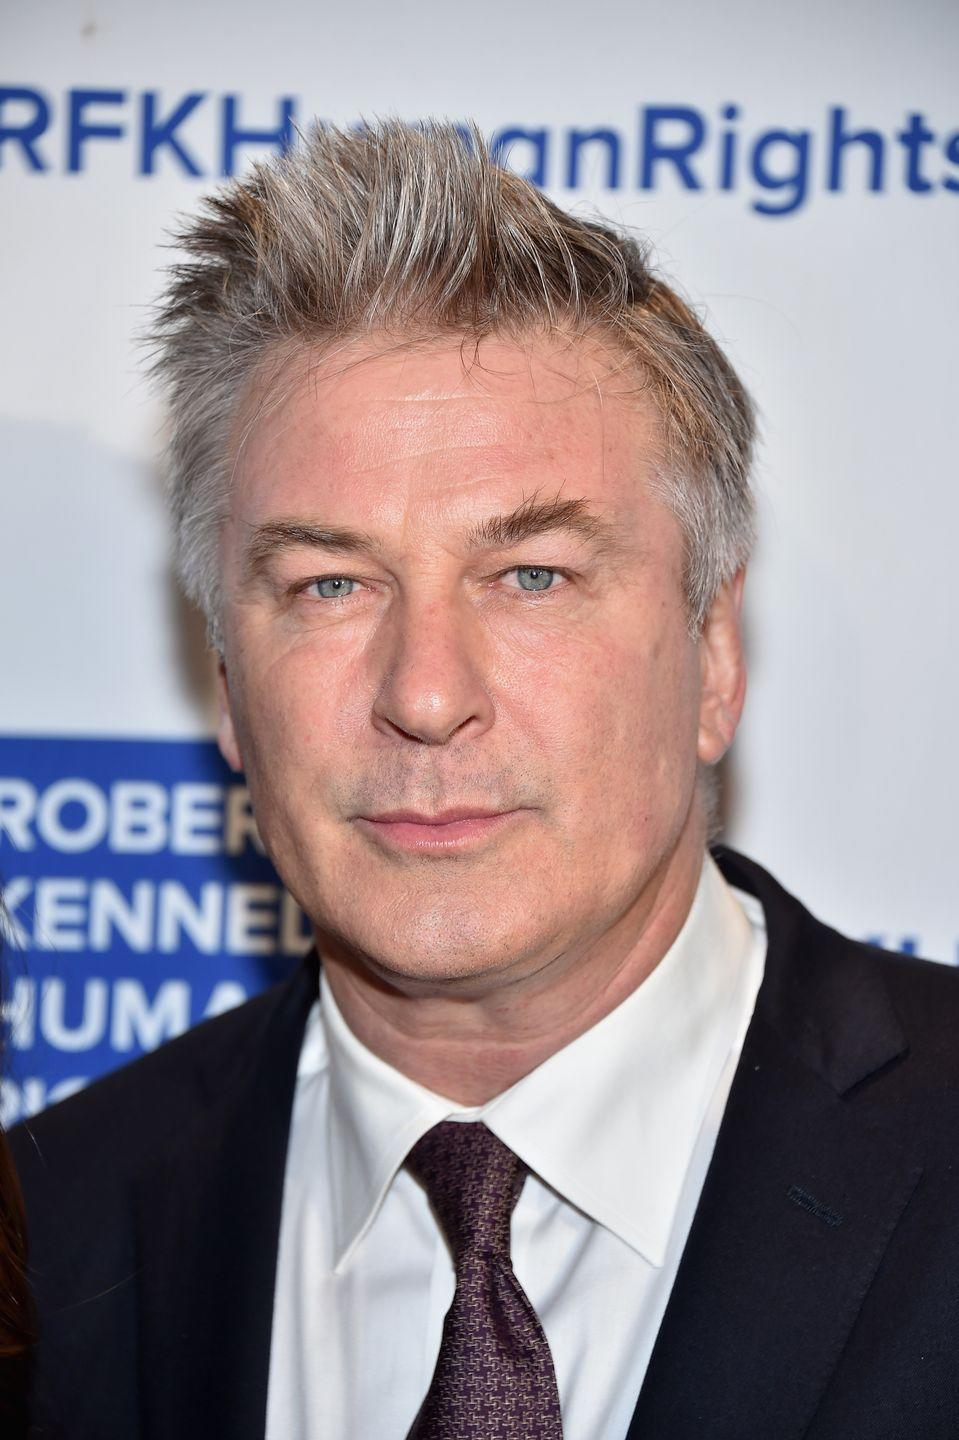 <p>The actor, who has recently been sporting a blonde wig while playing Donald Trump on <em>Saturday Night Live</em>, let his brown and gray as of late.</p>